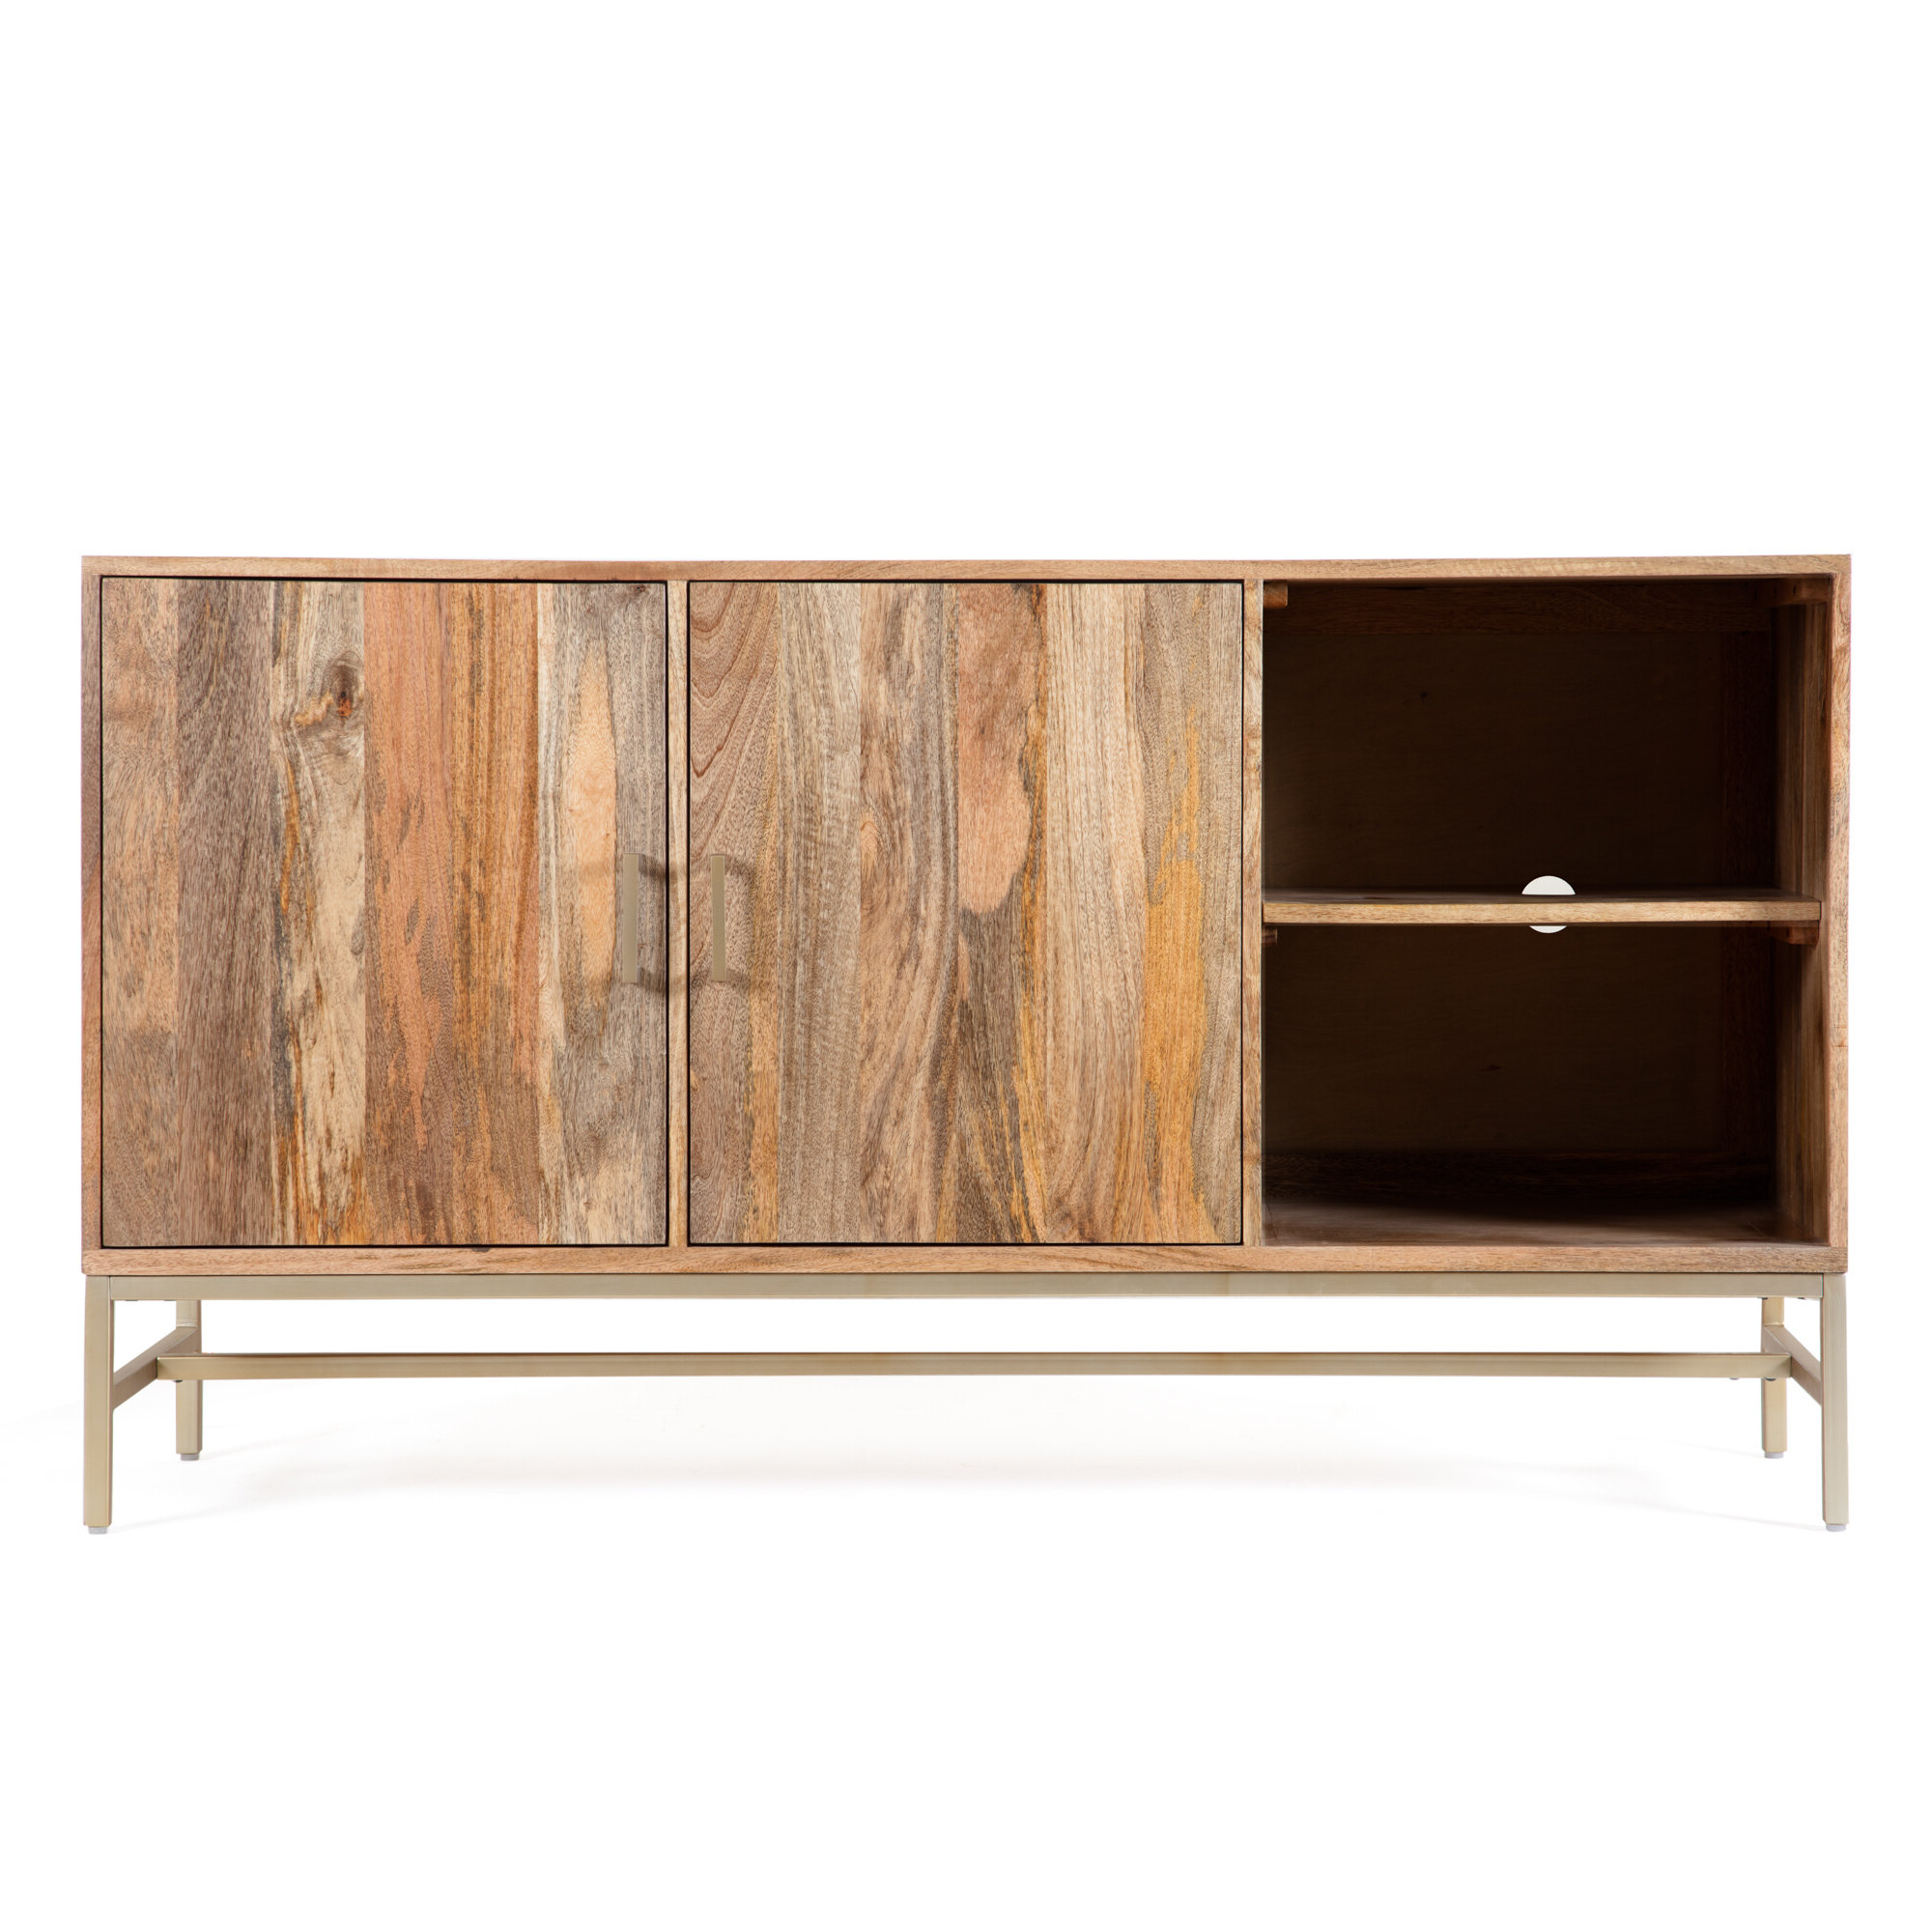 Allmodern For Preferred Lainey Credenzas (View 2 of 20)